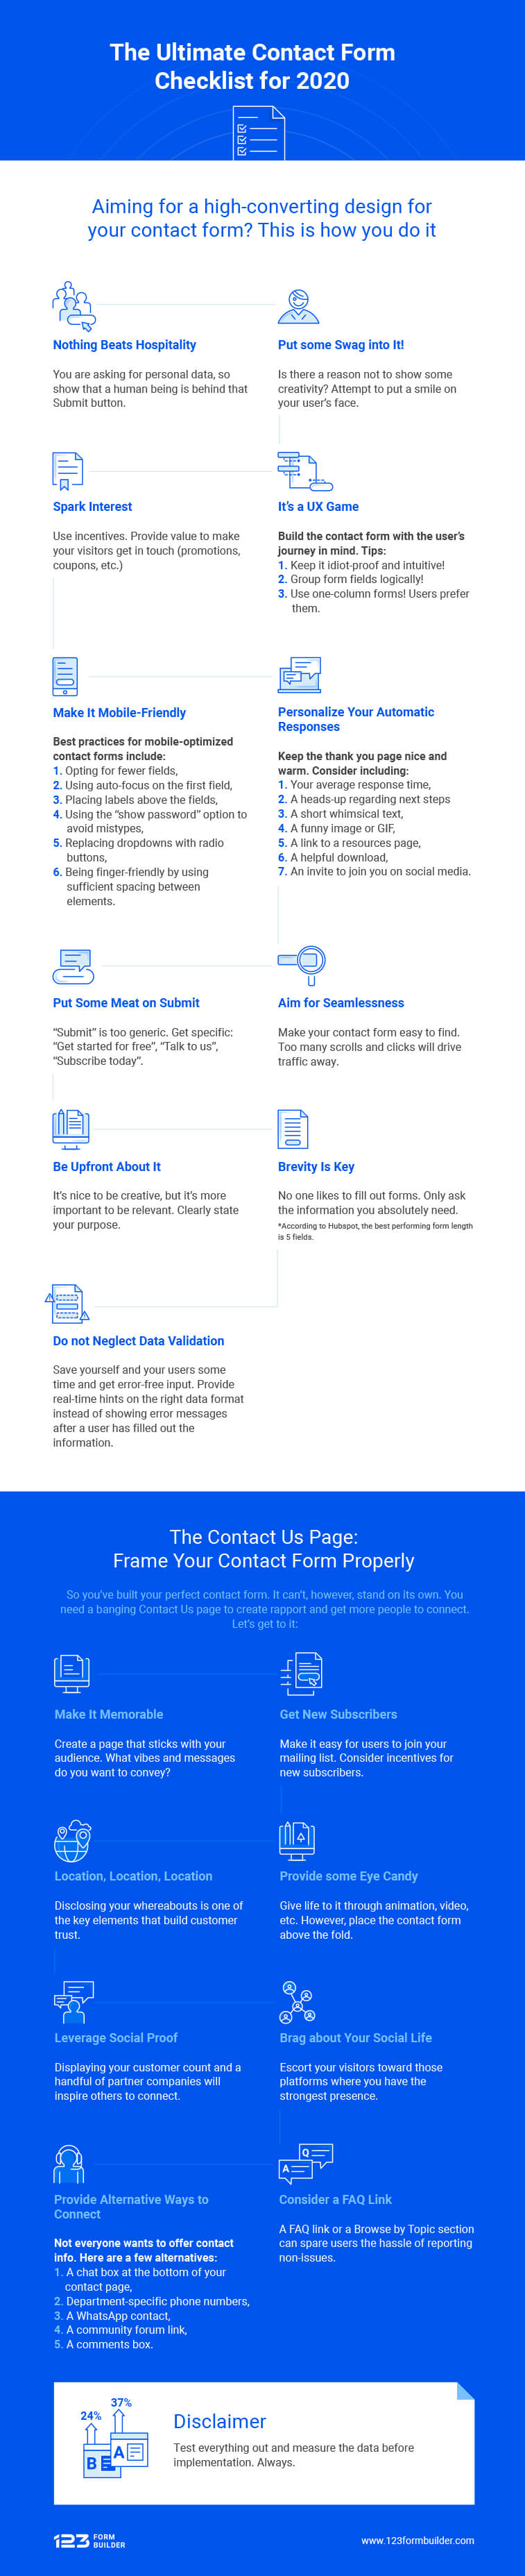 Contact Form Checklist 2020